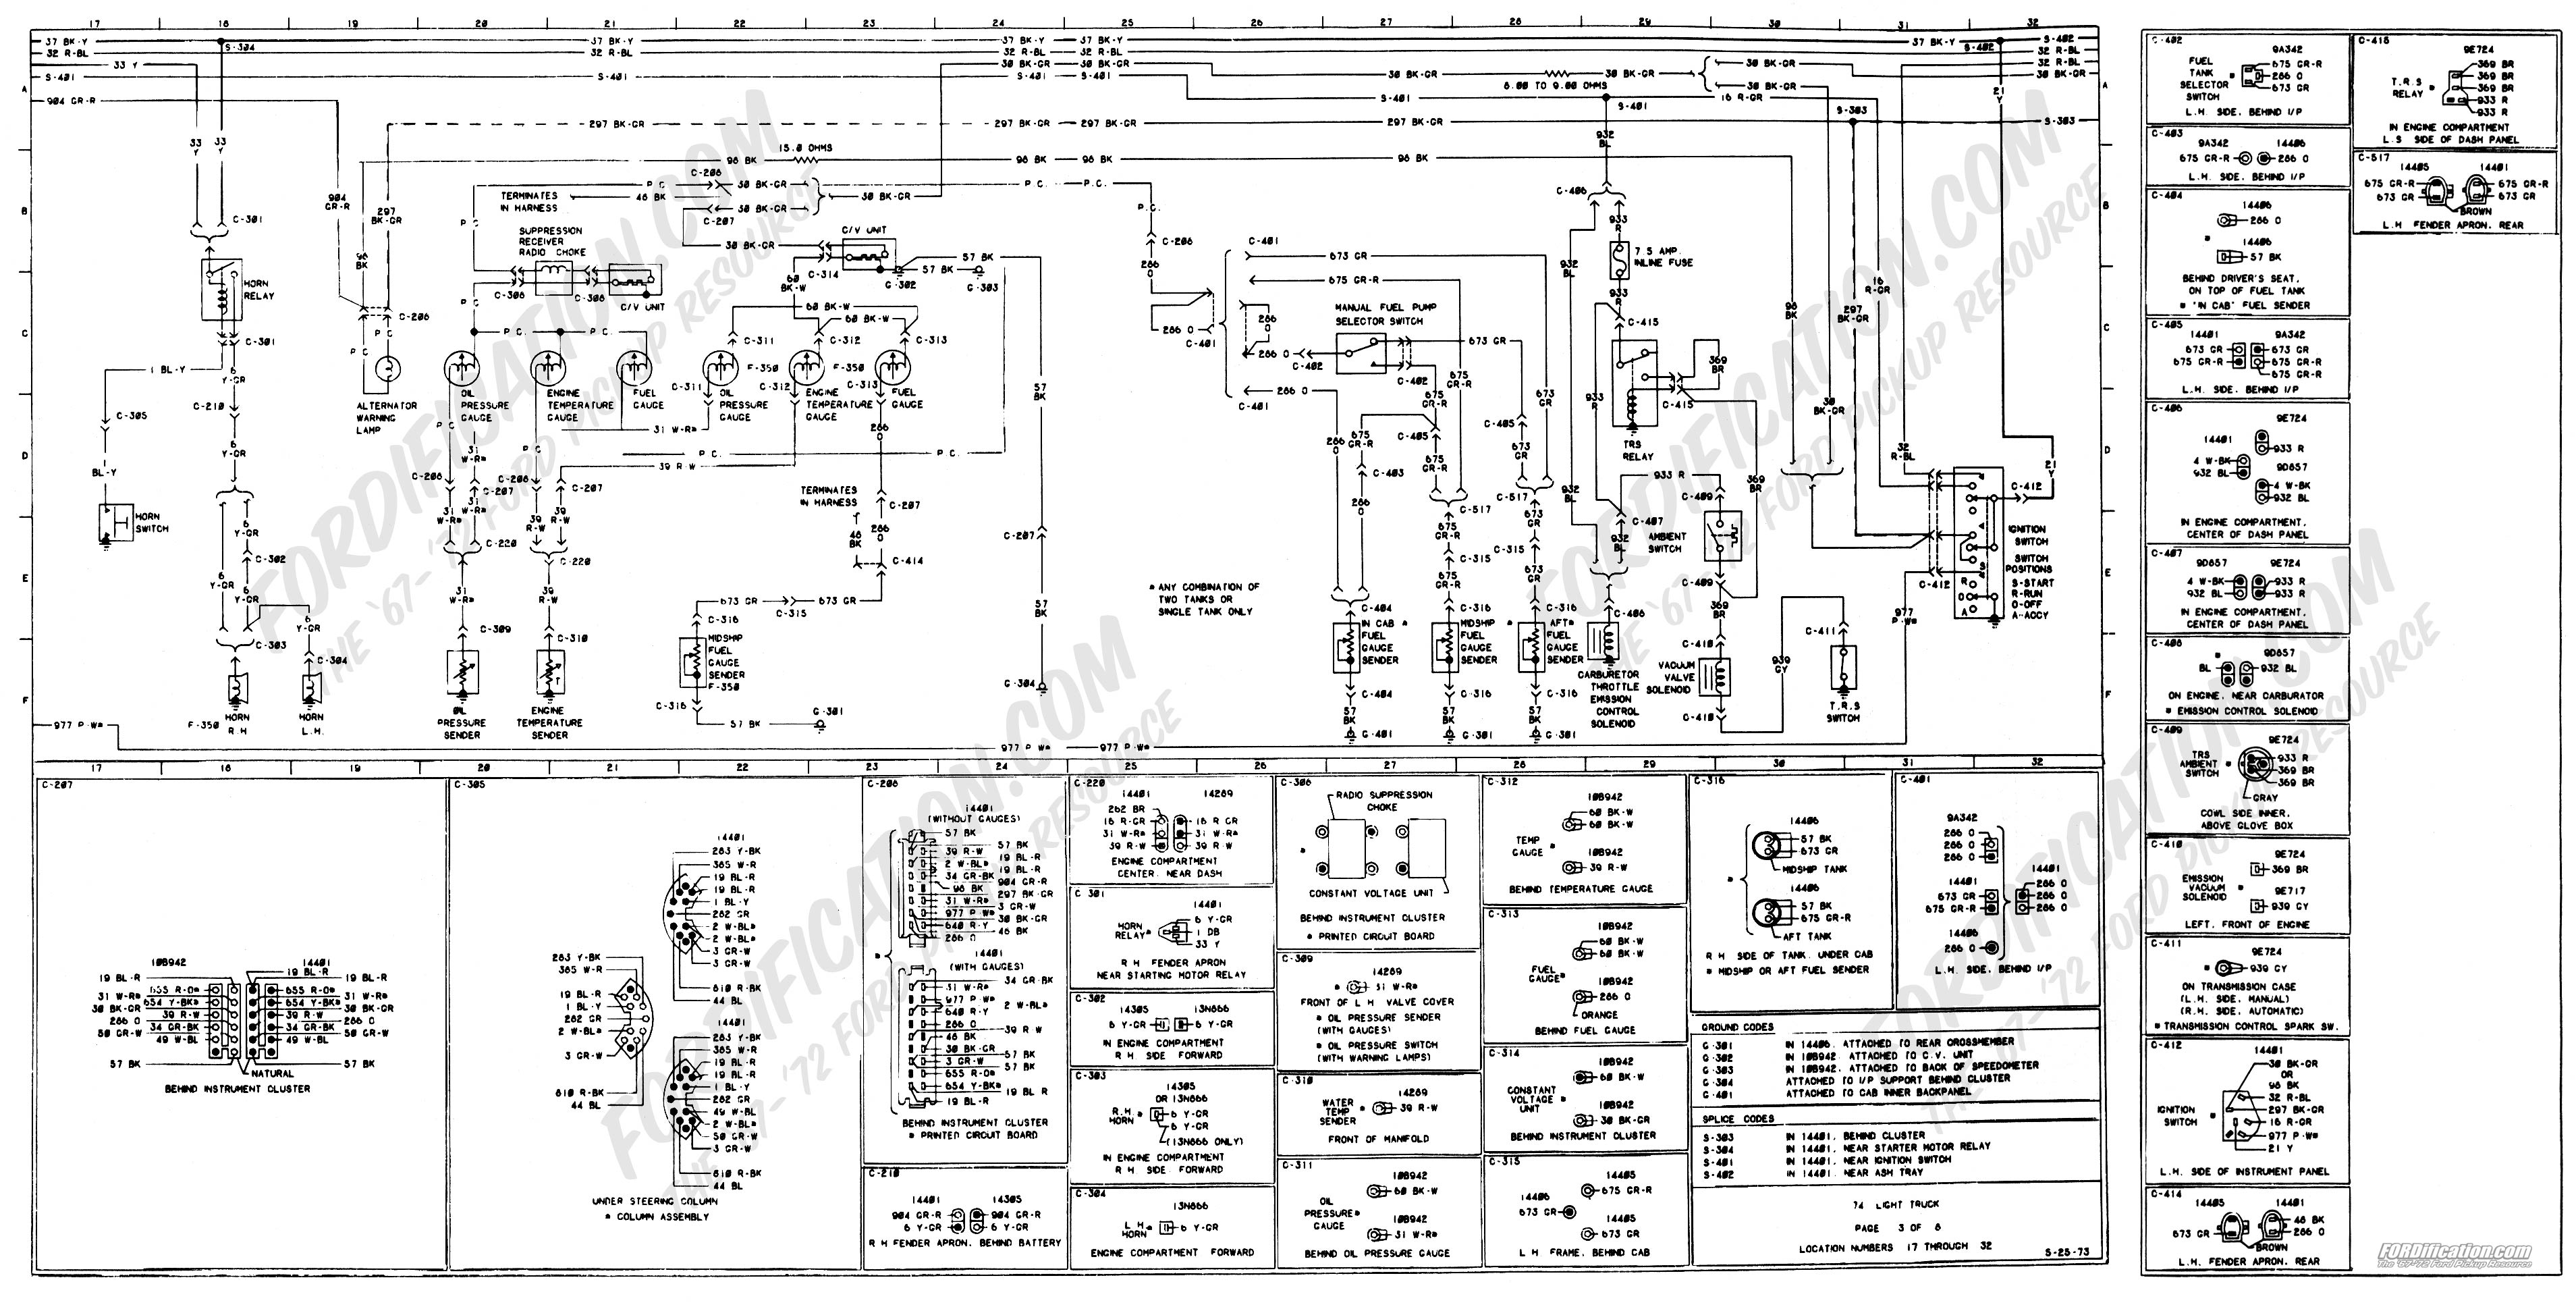 wiring diagrams for ford ambulance manual guide wiring diagram • 1973 1979 ford truck wiring diagrams schematics fordification net rh fordification net 24 volt wiring diagram ambulance disconnect switch wiring diagram